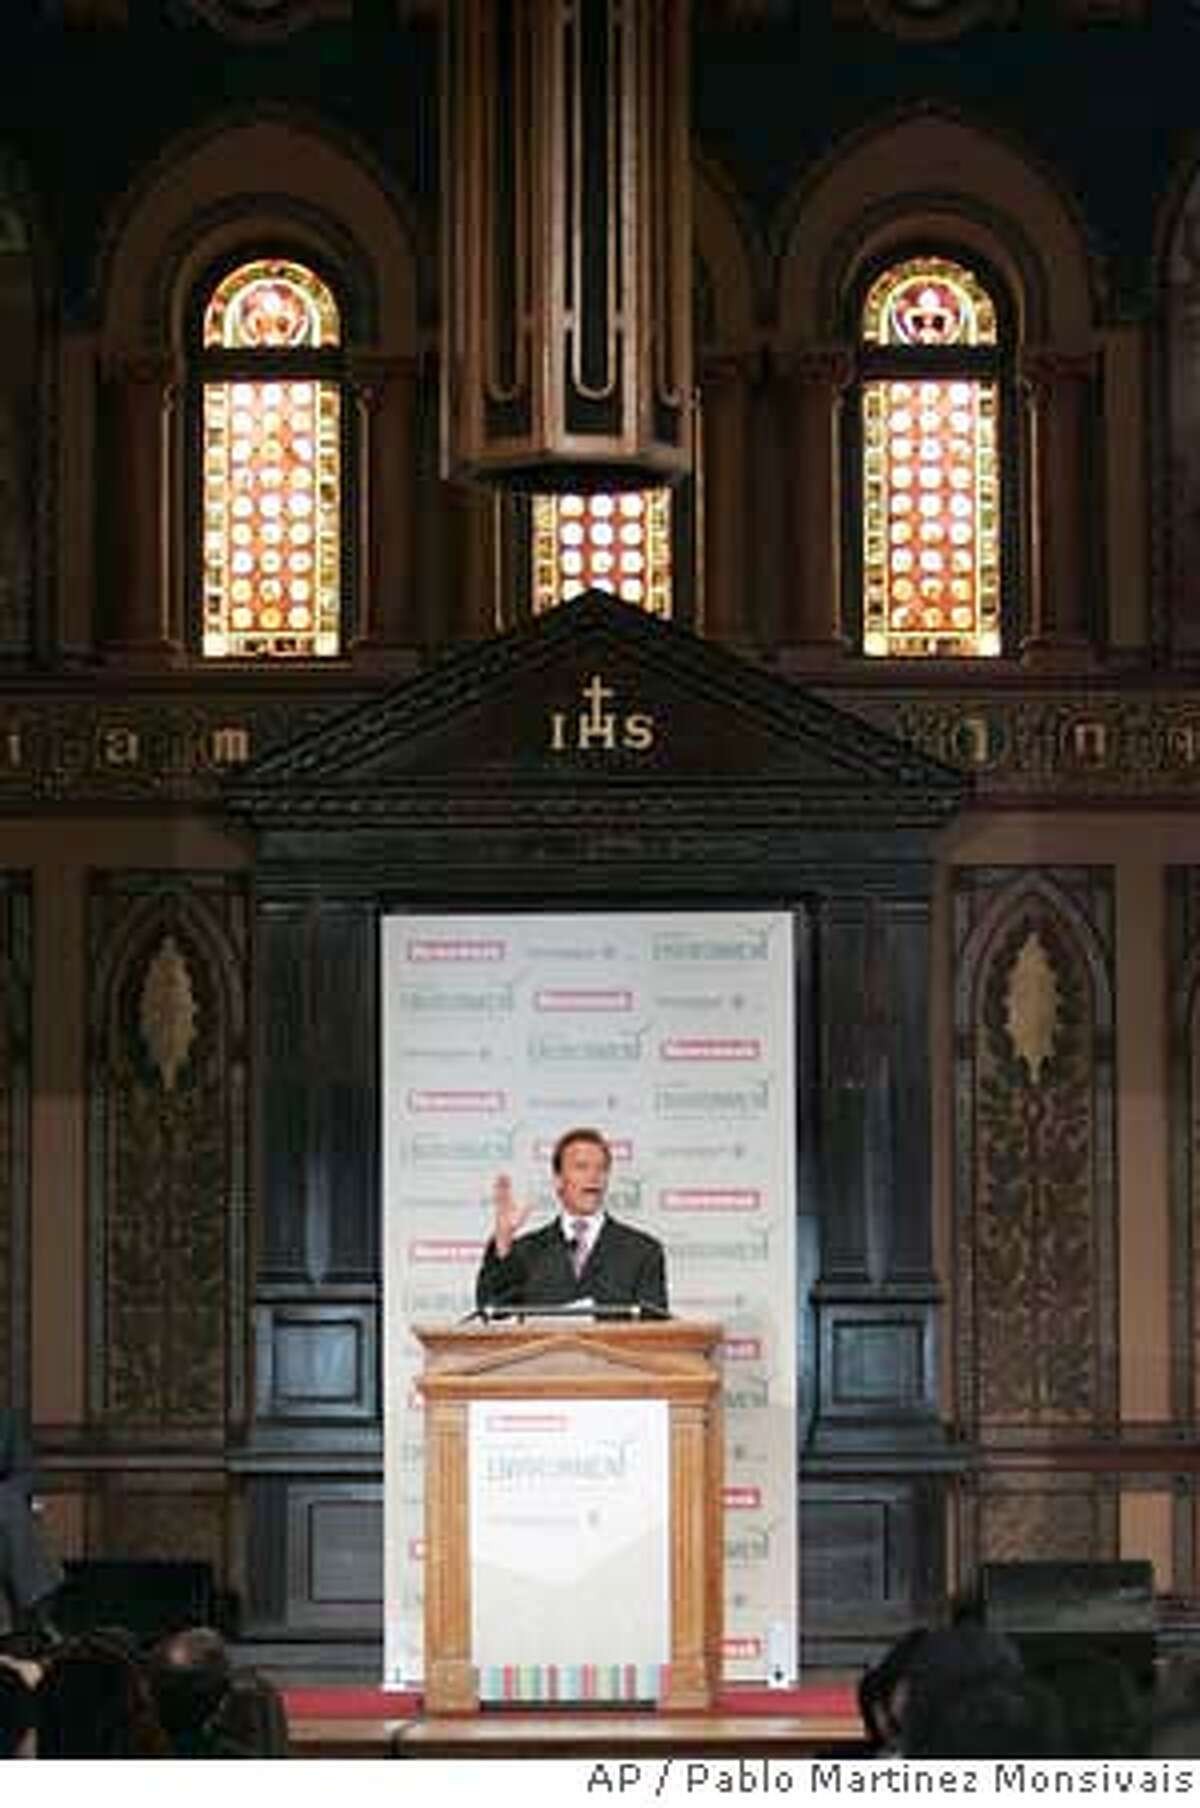 California Gov. Arnold Schwarzenegger delivers the keynote address at the Newsweek Global Environment Leadership Conference at Georgetown University, Wednesday, April 11, 2007, in Washington. (AP Photo/Pablo Martinez Monsivais)